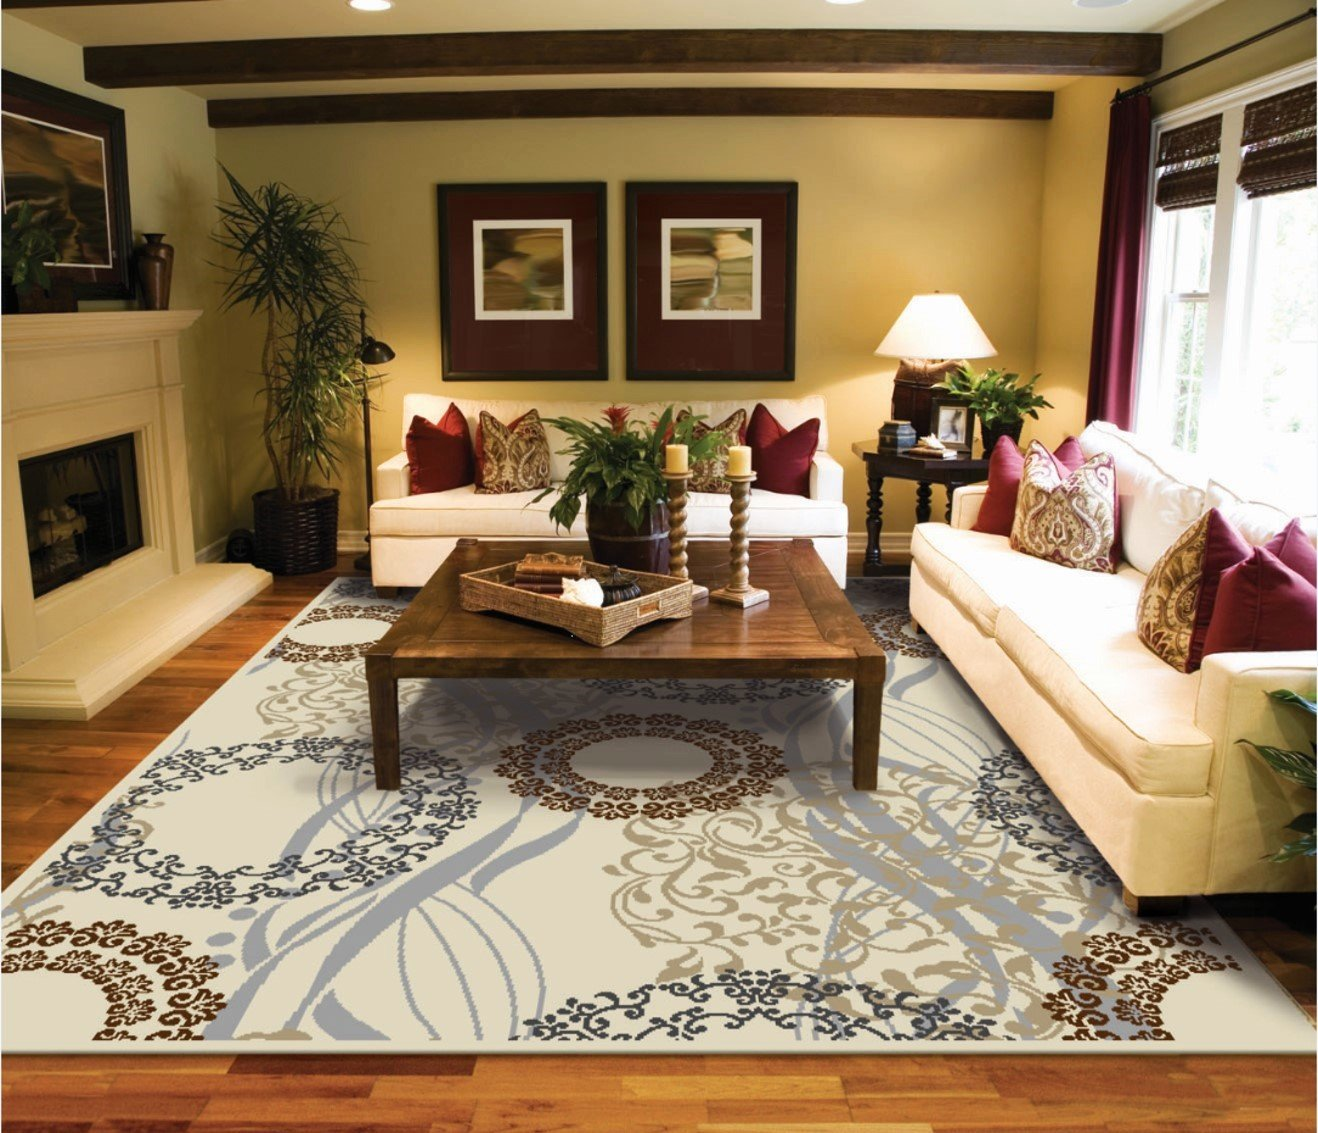 Rugs For Living Room New in raleigh kitchen cabinets Home Decorating